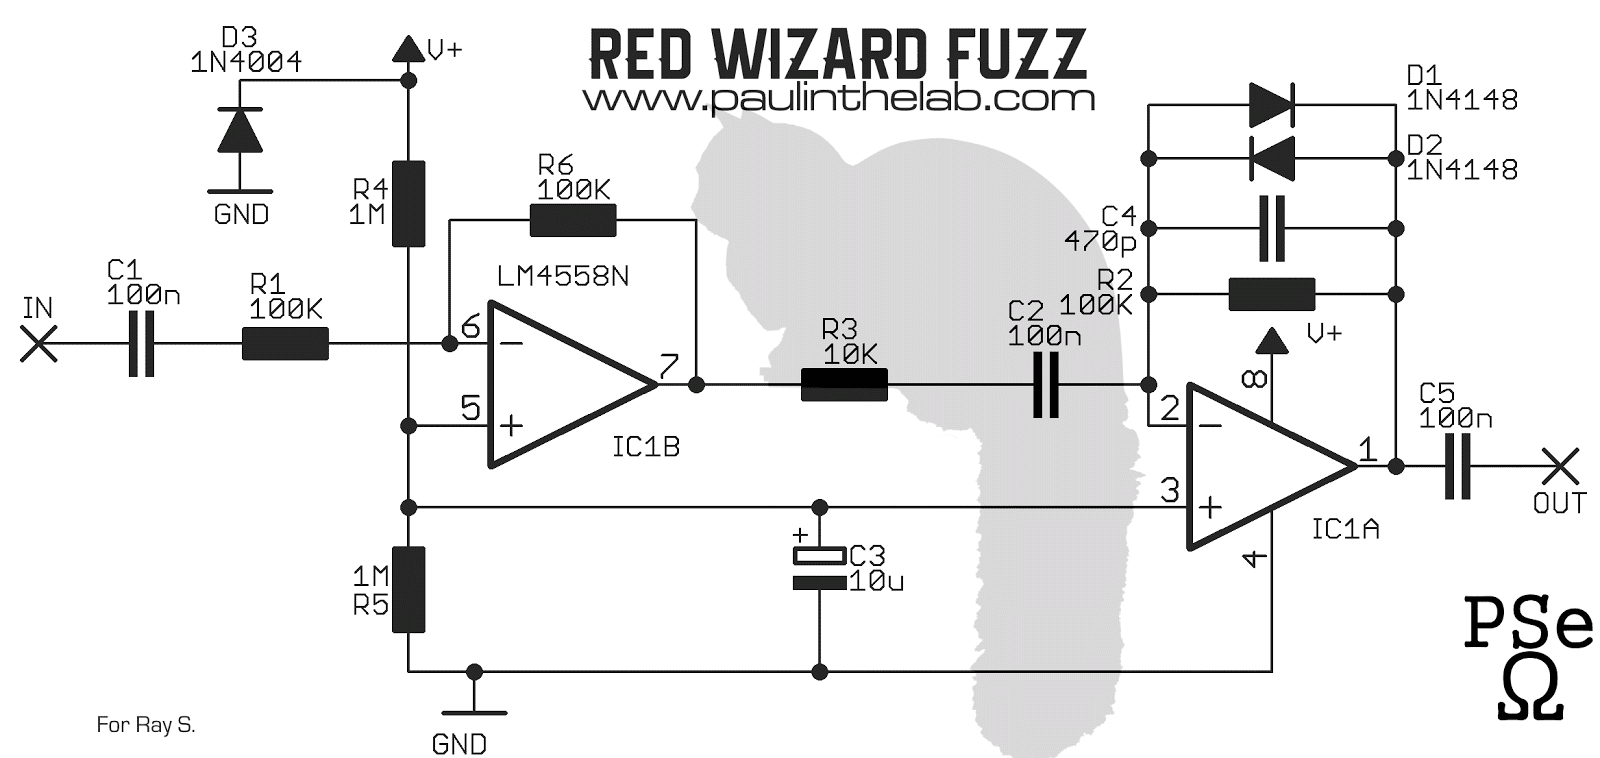 paul in the lab  red wizard fuzz stripboard layout